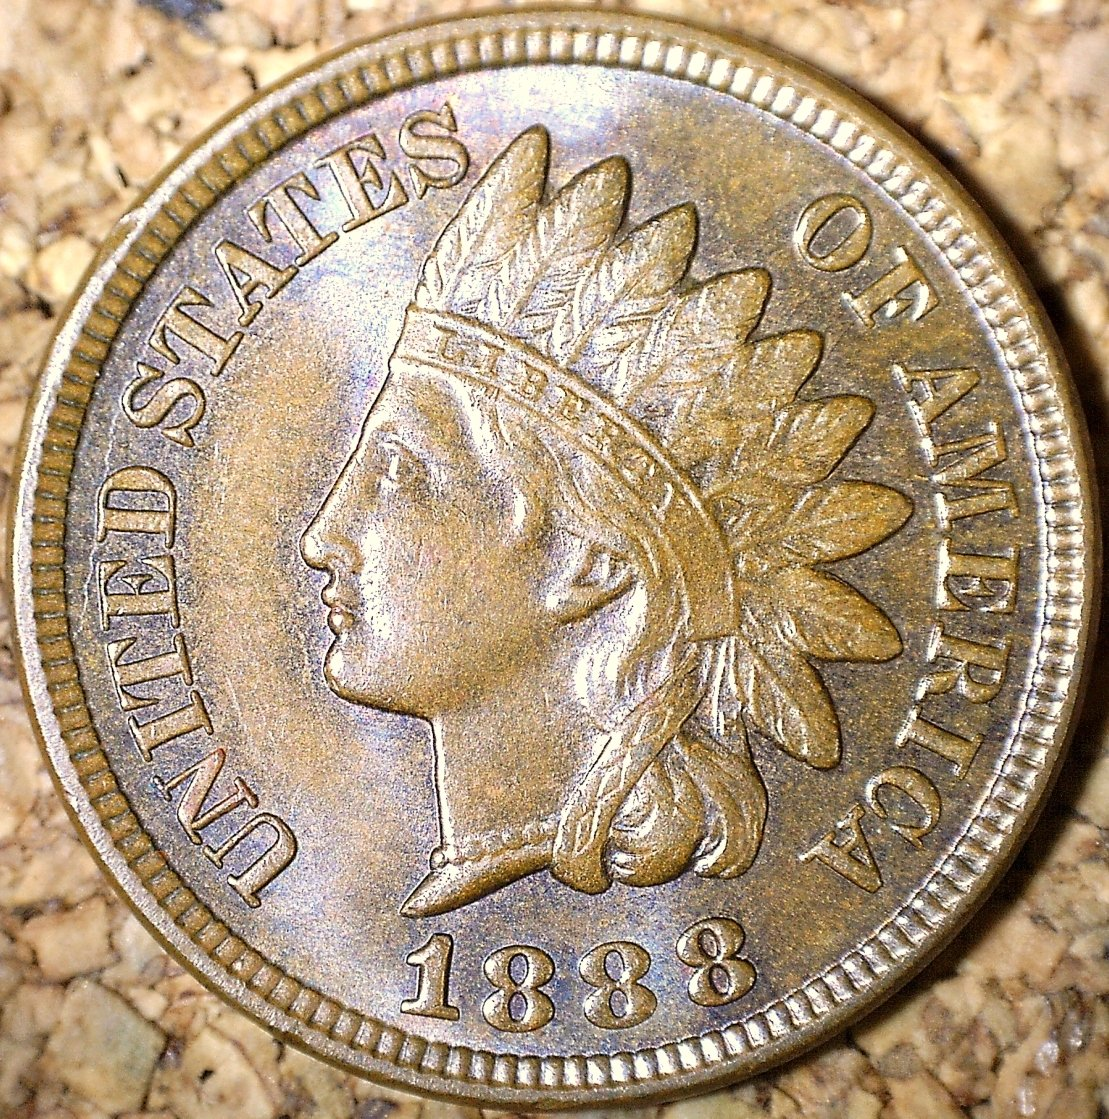 1888 MPD-007, RPD-007 - Indian Head Penny - Photo by David Killough